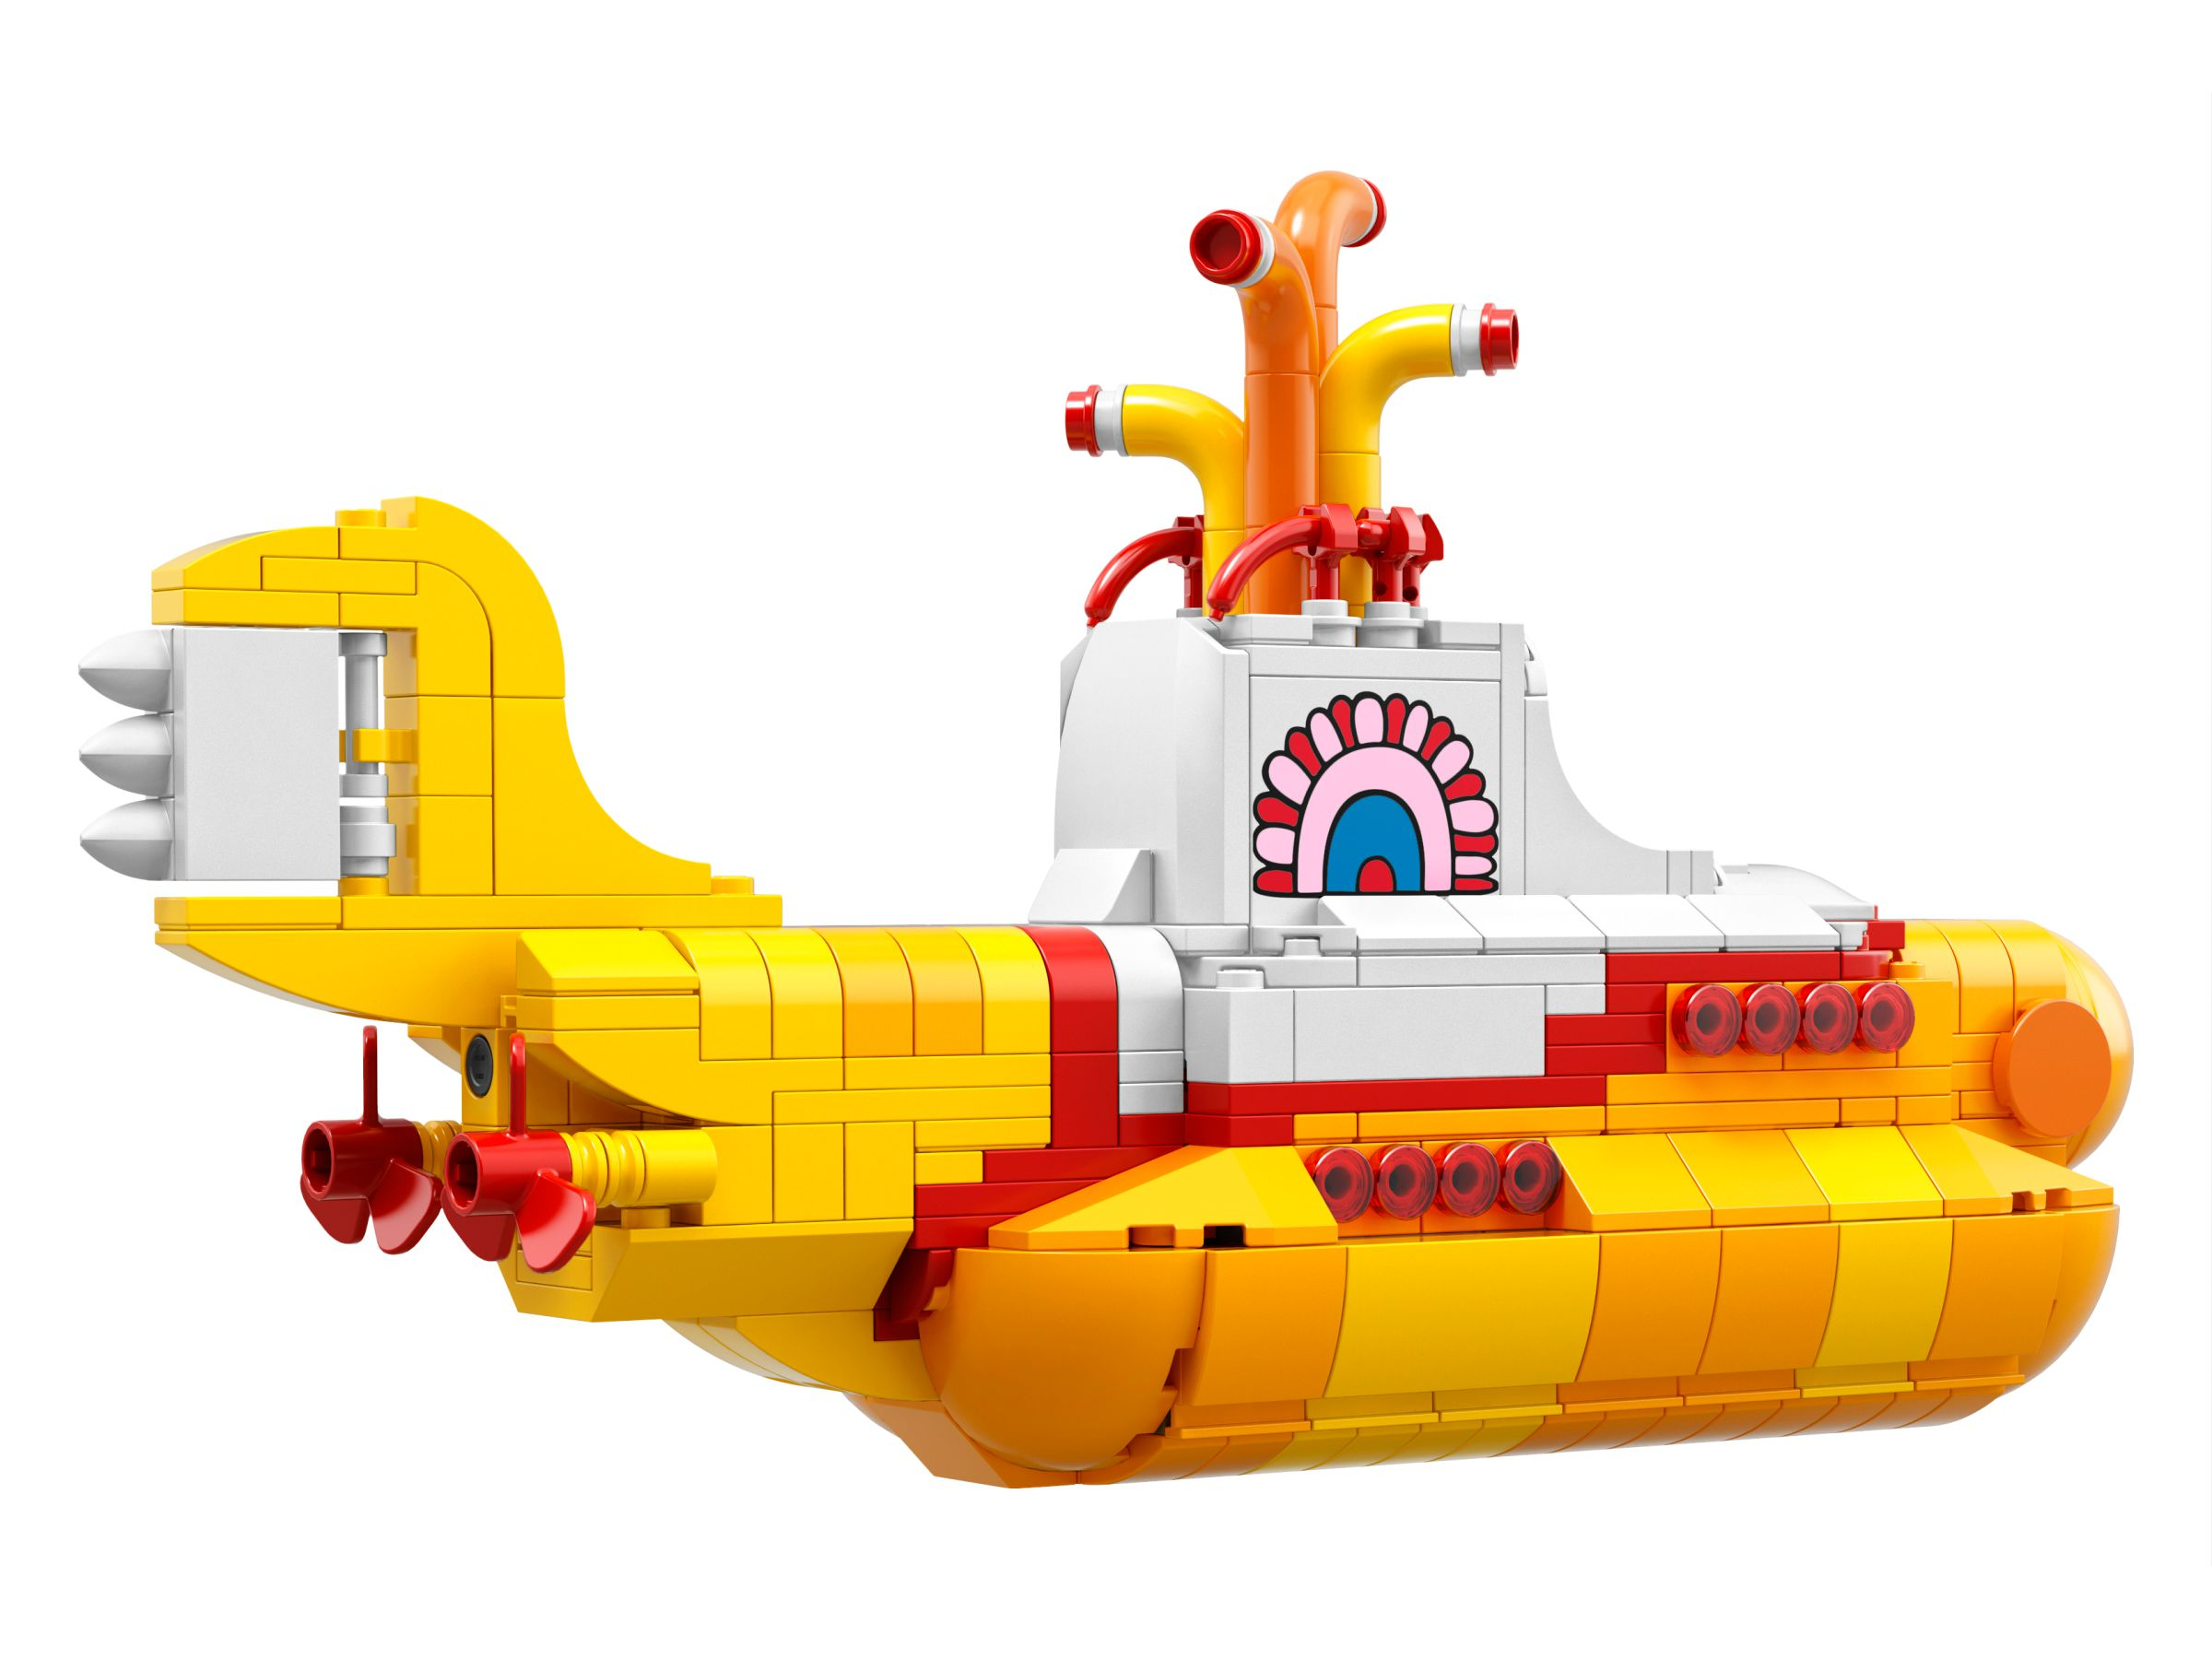 LEGO Ideas 21306 Yellow Submarine LEGO_21306_alt3.jpg